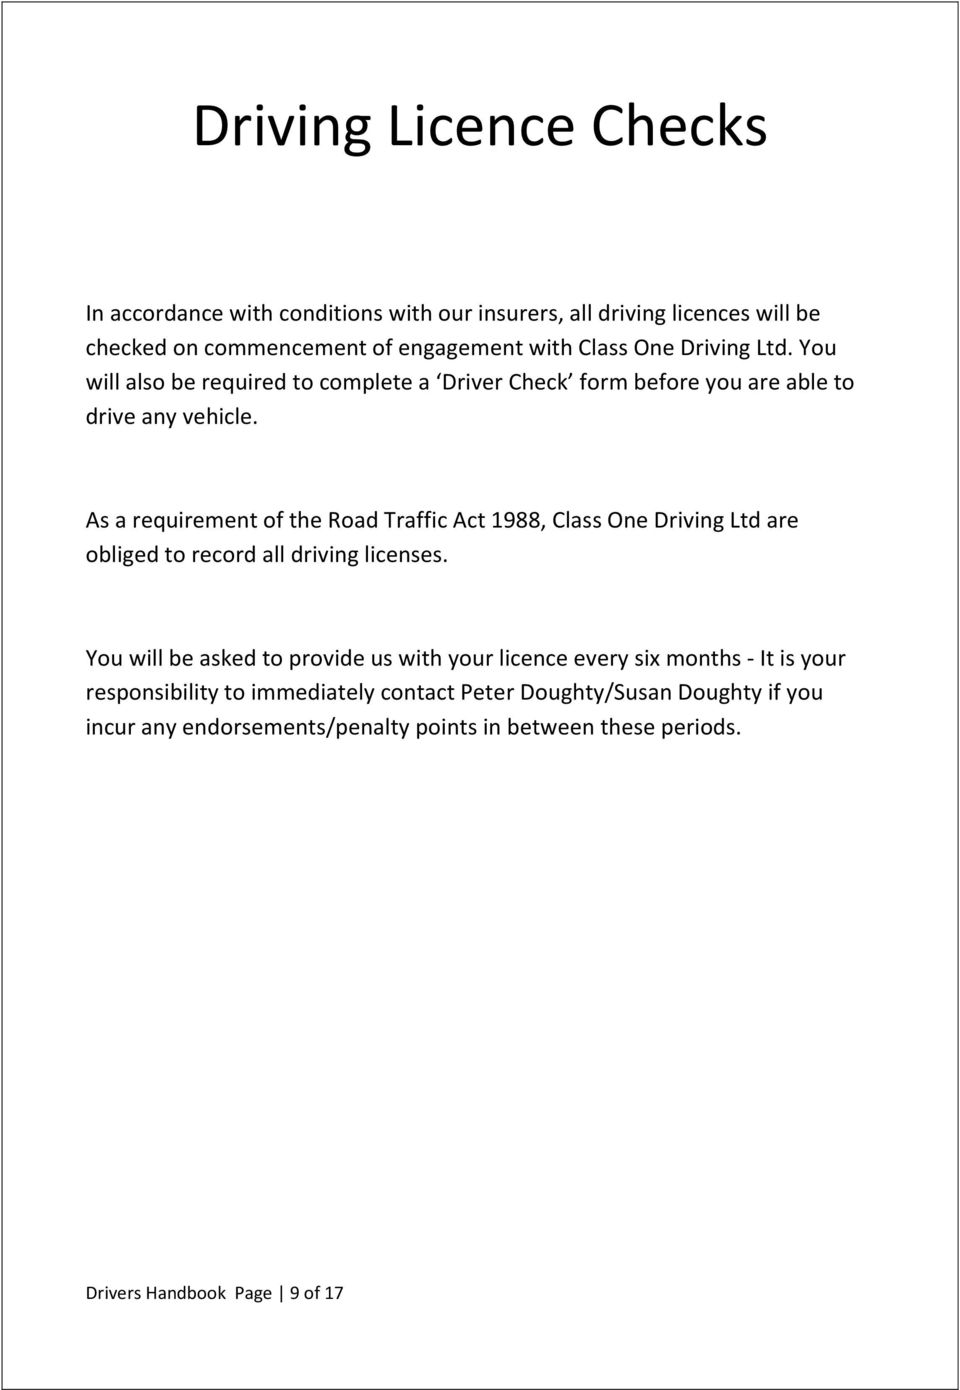 As a requirement of the Road Traffic Act 1988, Class One Driving Ltd are obliged to record all driving licenses.